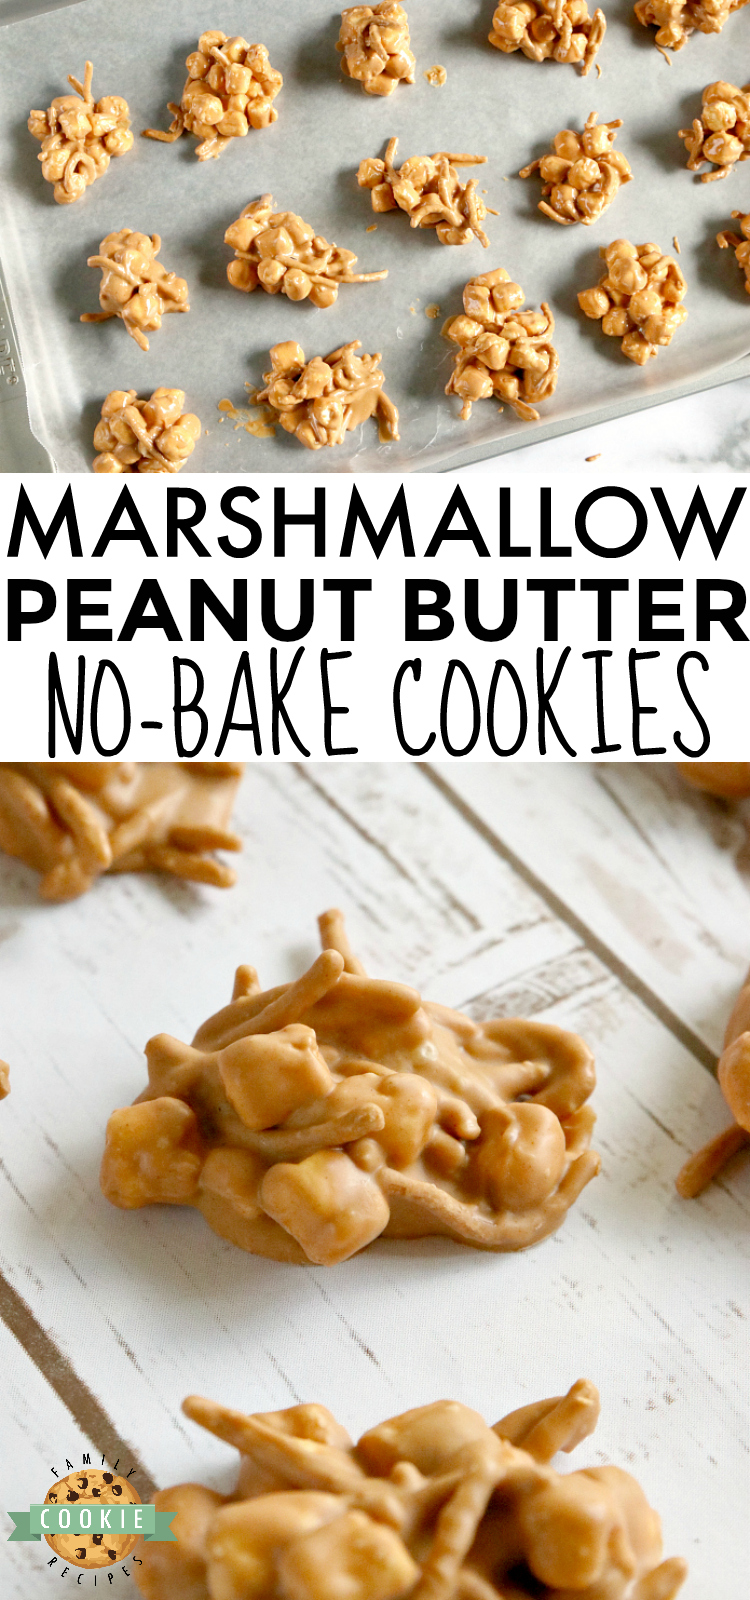 Marshmallow Peanut Butter No Bake Cookies are made with only 4 ingredients - marshmallows, peanut butter, butterscotch chips and chow mein noodles! via @familycookierecipes